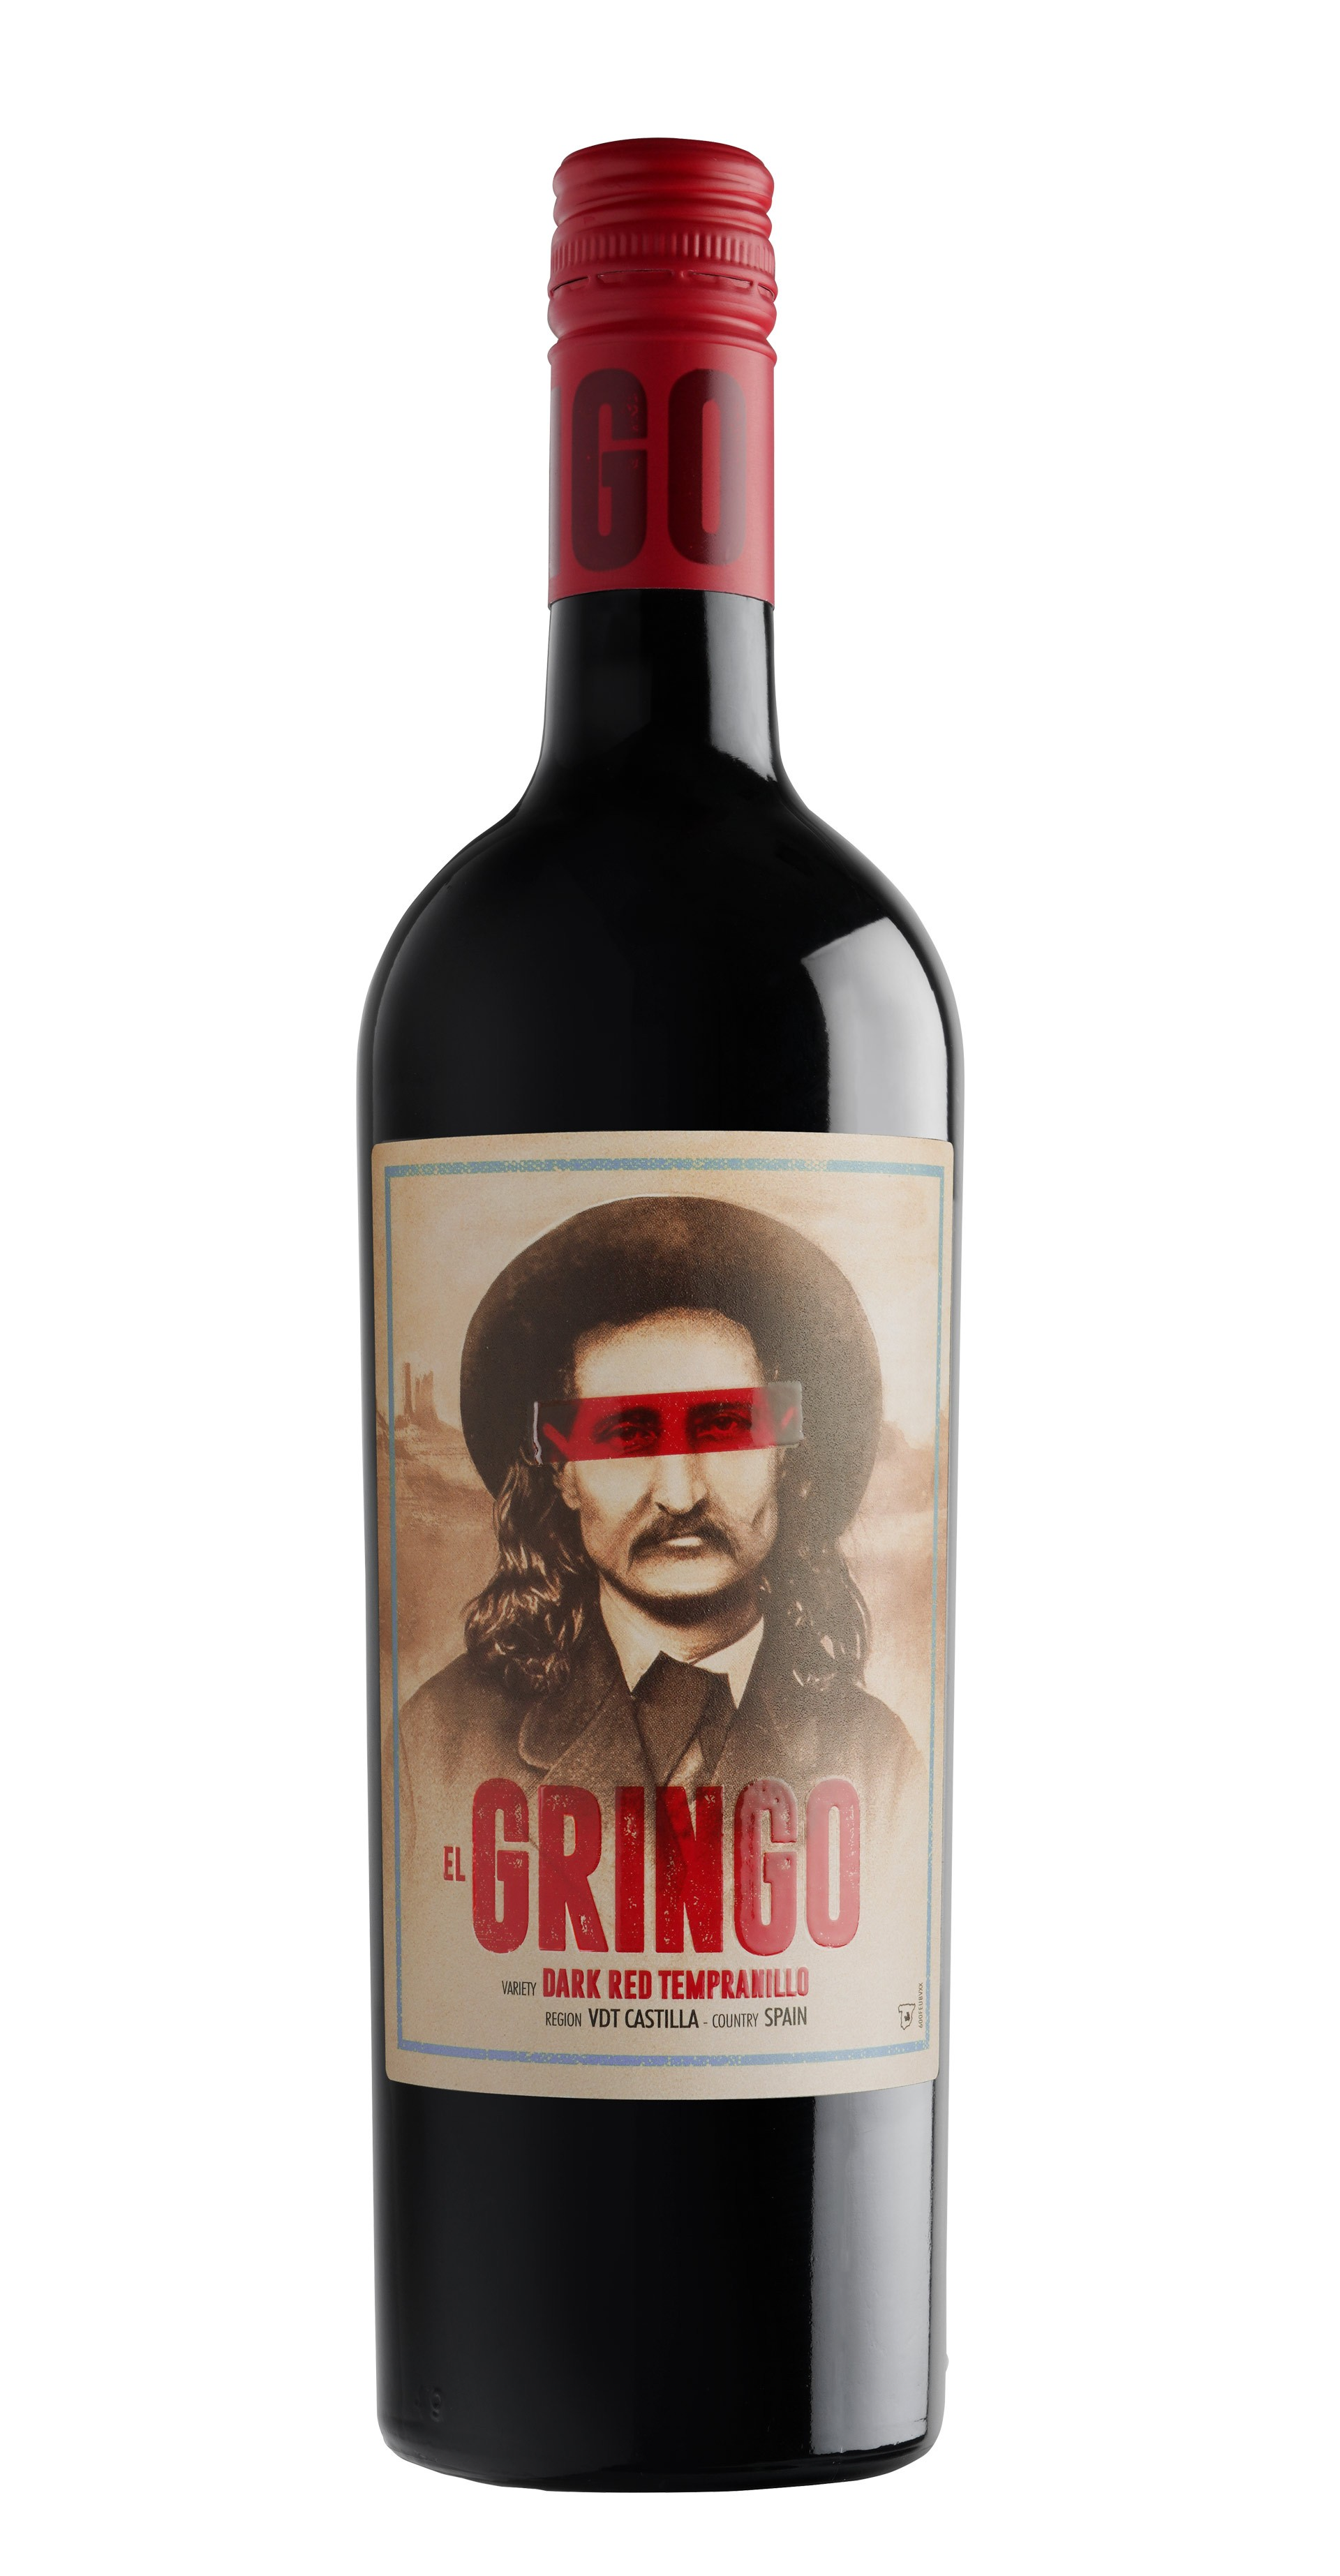 Dark Red Tempranillo